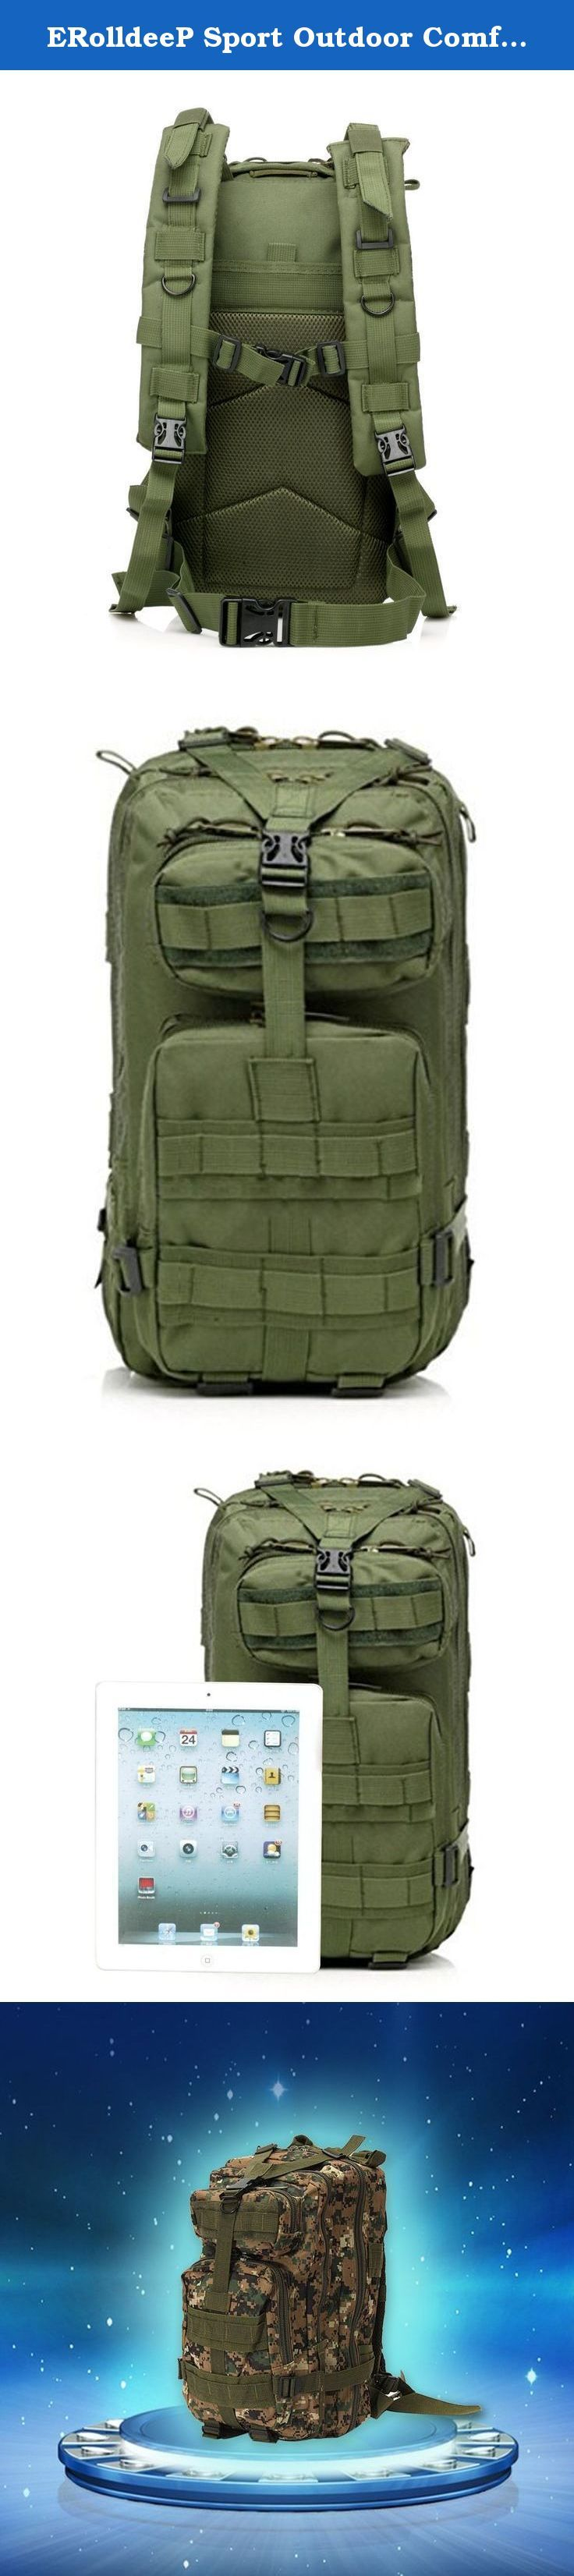 ERolldeeP Sport Outdoor Comfortable Waterproof Assault Pack Military Rucksacks Tactical Molle Backpack Hiking Backpack Hiking Daypack Camping Hiking Trekking Climbing Bag 25L-30L for boys kids. The pack offers a great amount of carrying space and is perfect for military as well as camping hiking and other outdoor activities. This pack is made of a strong nylon construction. Able to withstand daily use in any outside condition. Includes numerous double stitched Molle system so you can add...